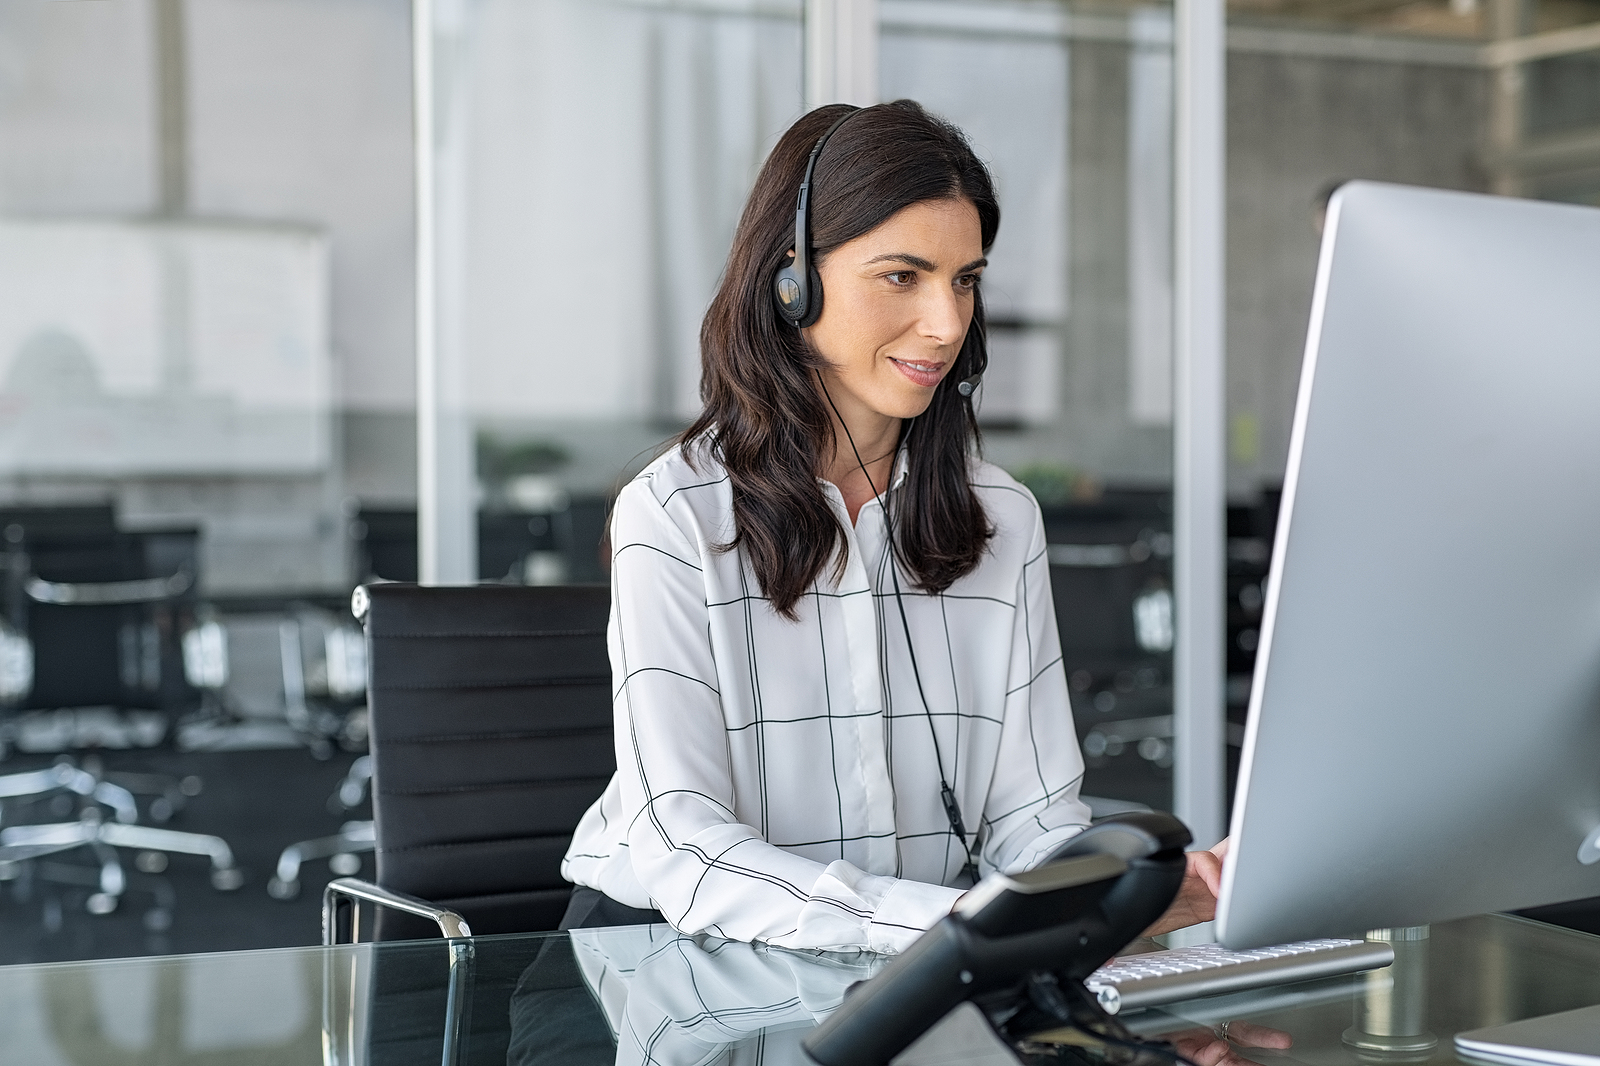 The Benefits of Outsourcing Your Helpdesk Support